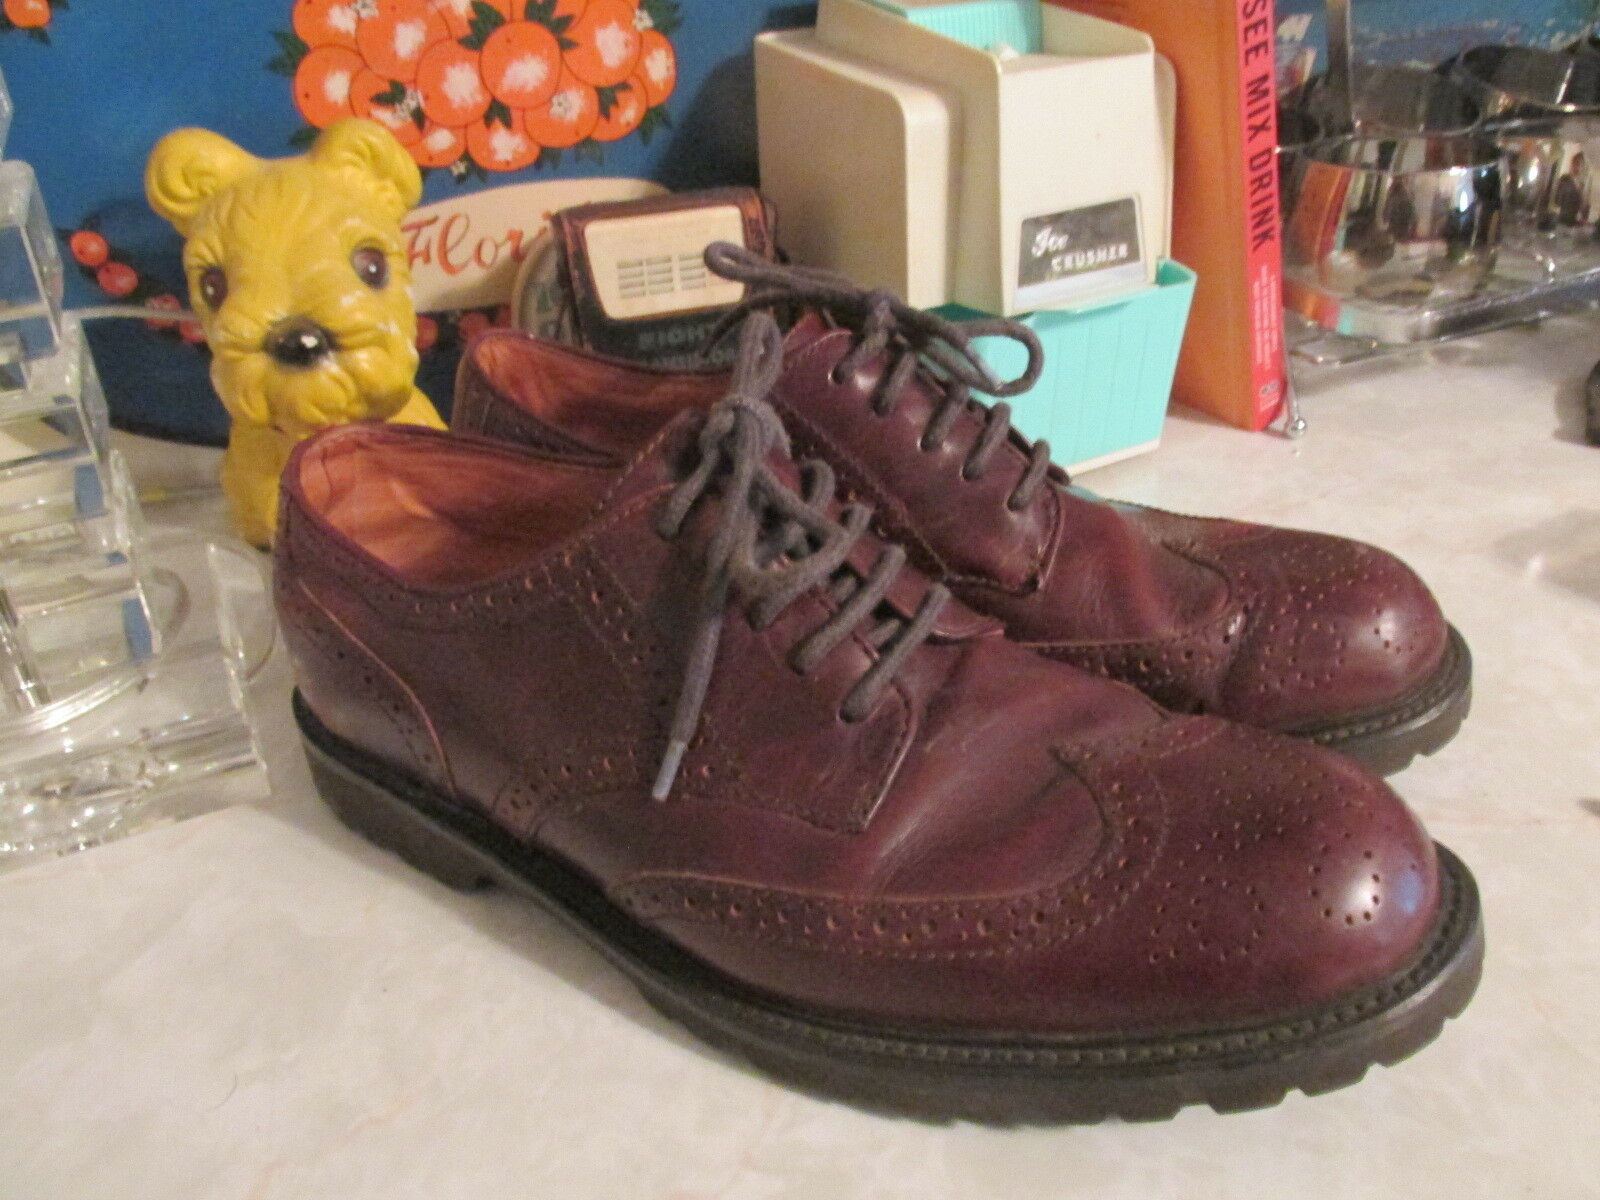 Orivis men's brown wingtips shoes size 11 M dress or casual